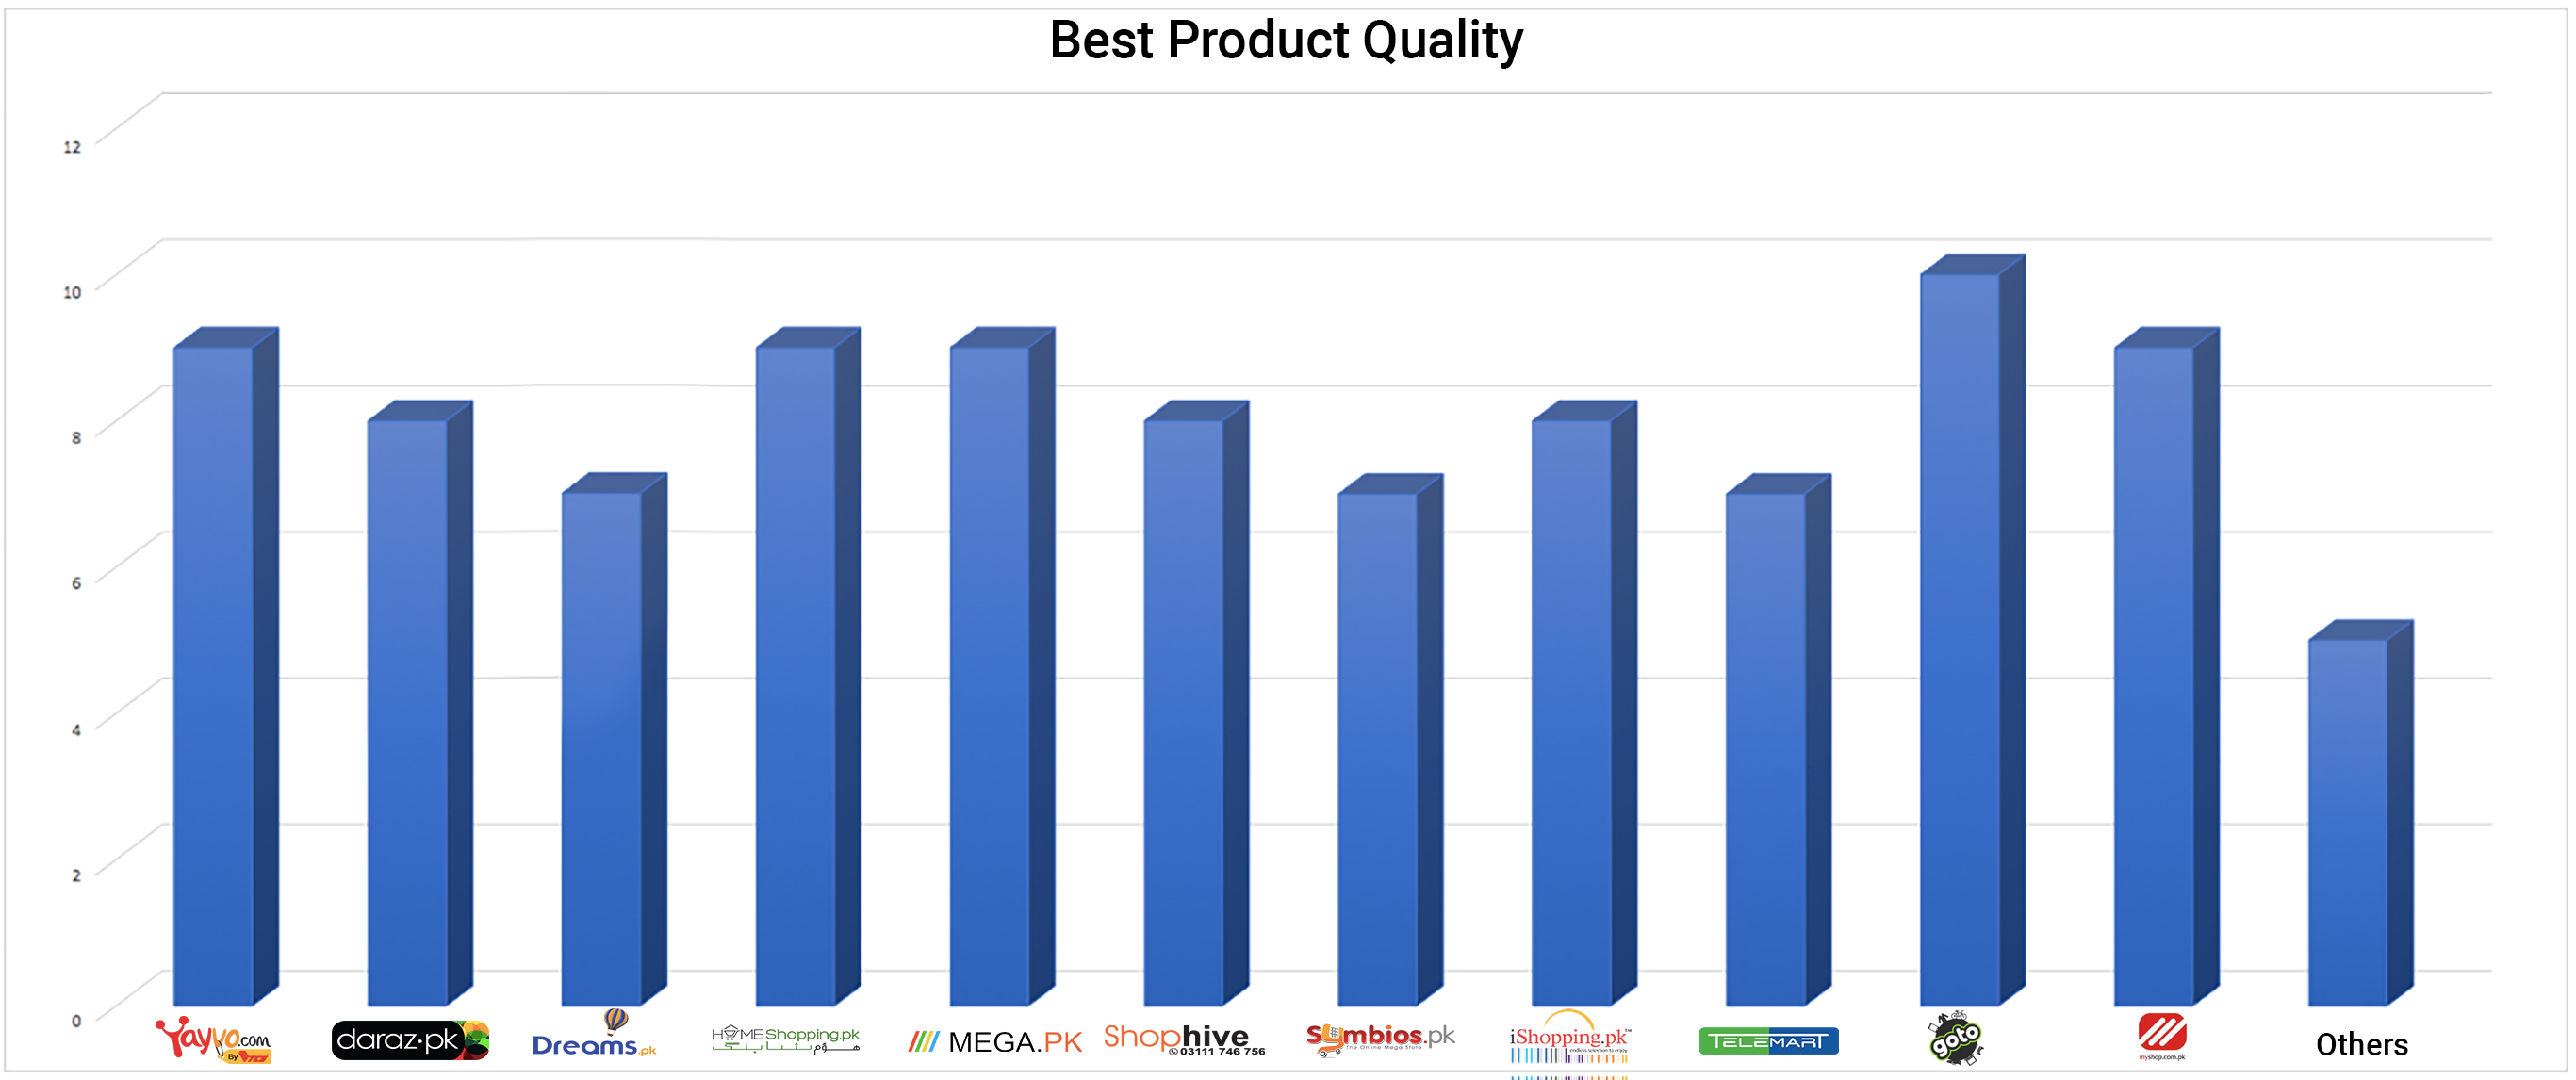 Best Product Quality